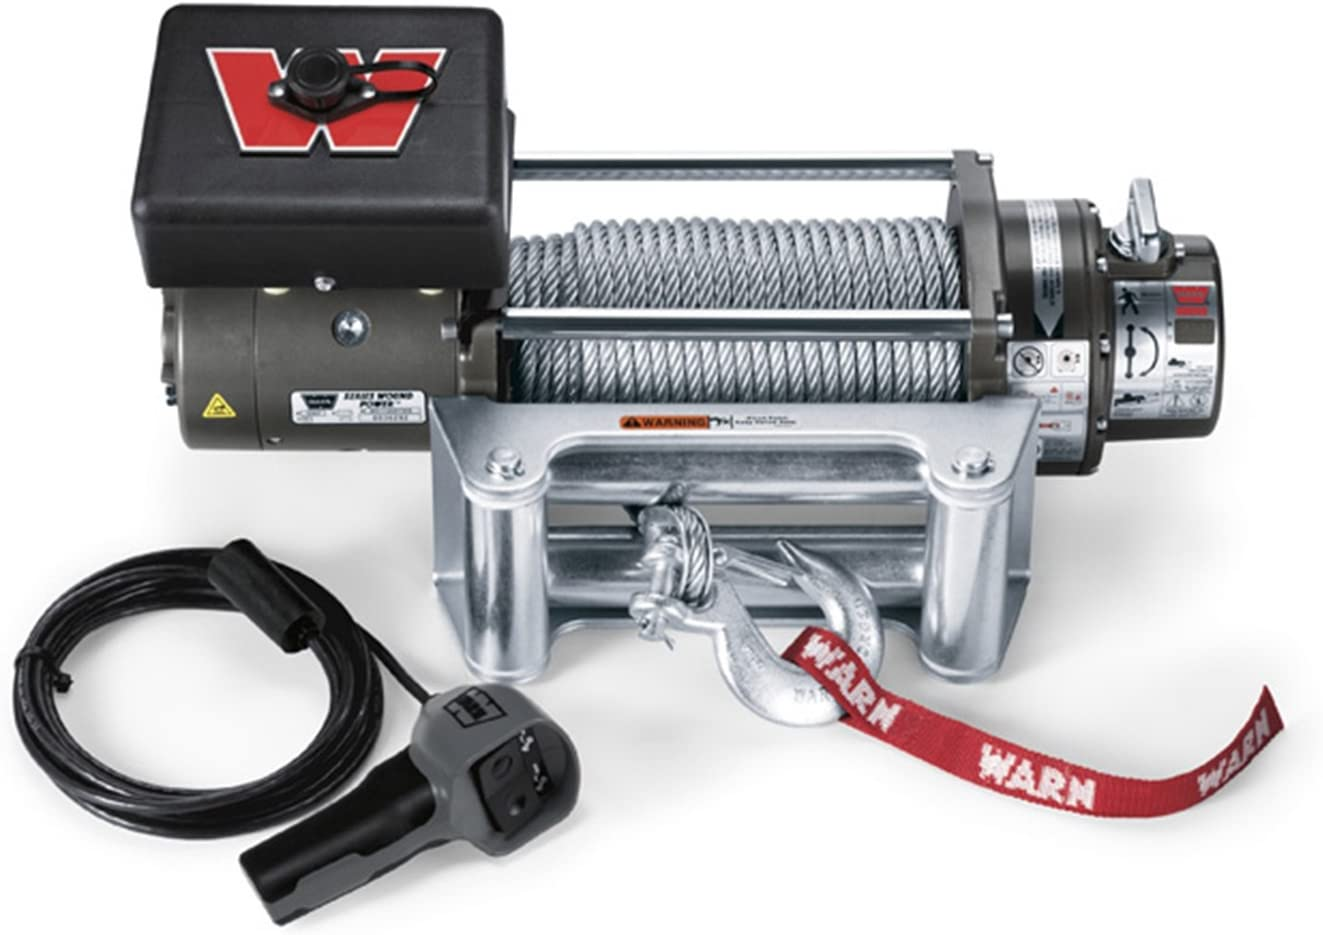 "WARN 26502 M8000 Series Electric 12V Winch with Steel Cable Wire Rope: 5/16"" Diameter x 100' Length, 4 Ton (8,000 lb) Lifting/Pulling Capacity"